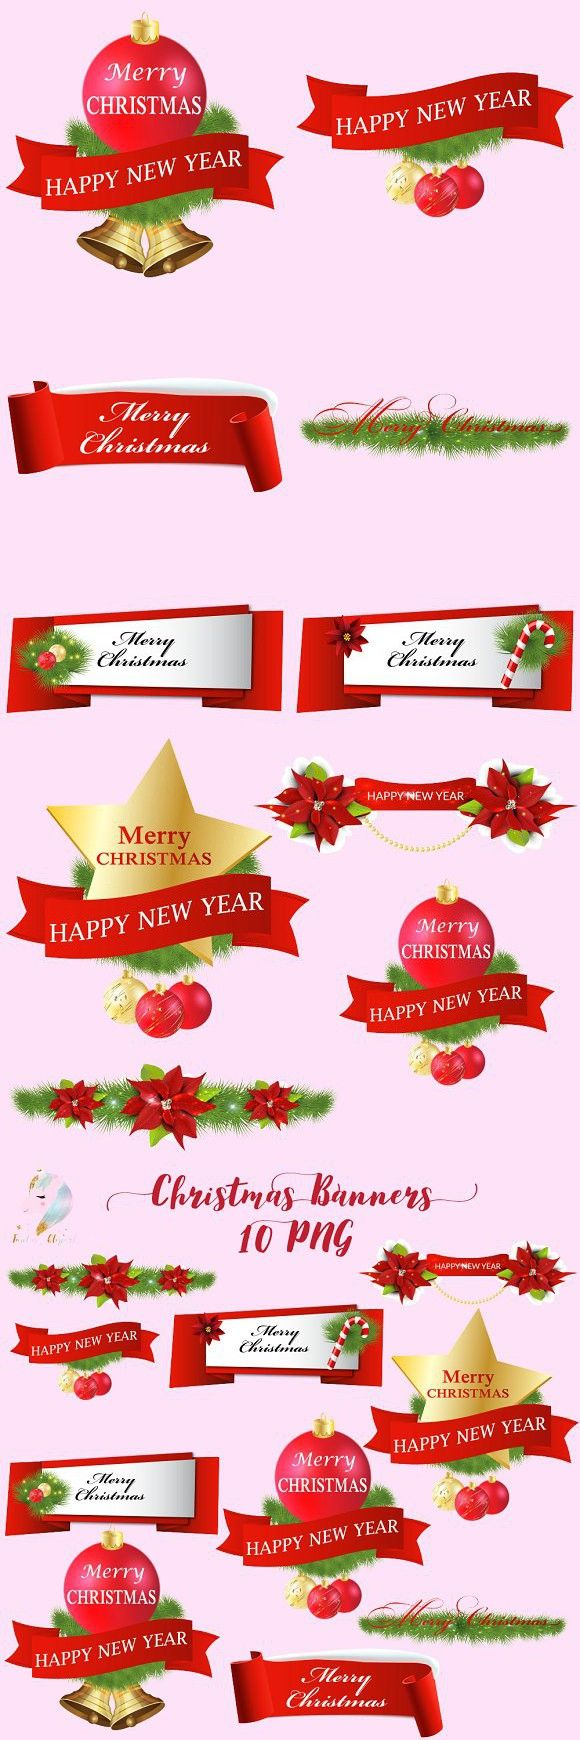 medium resolution of christmas banners clipart